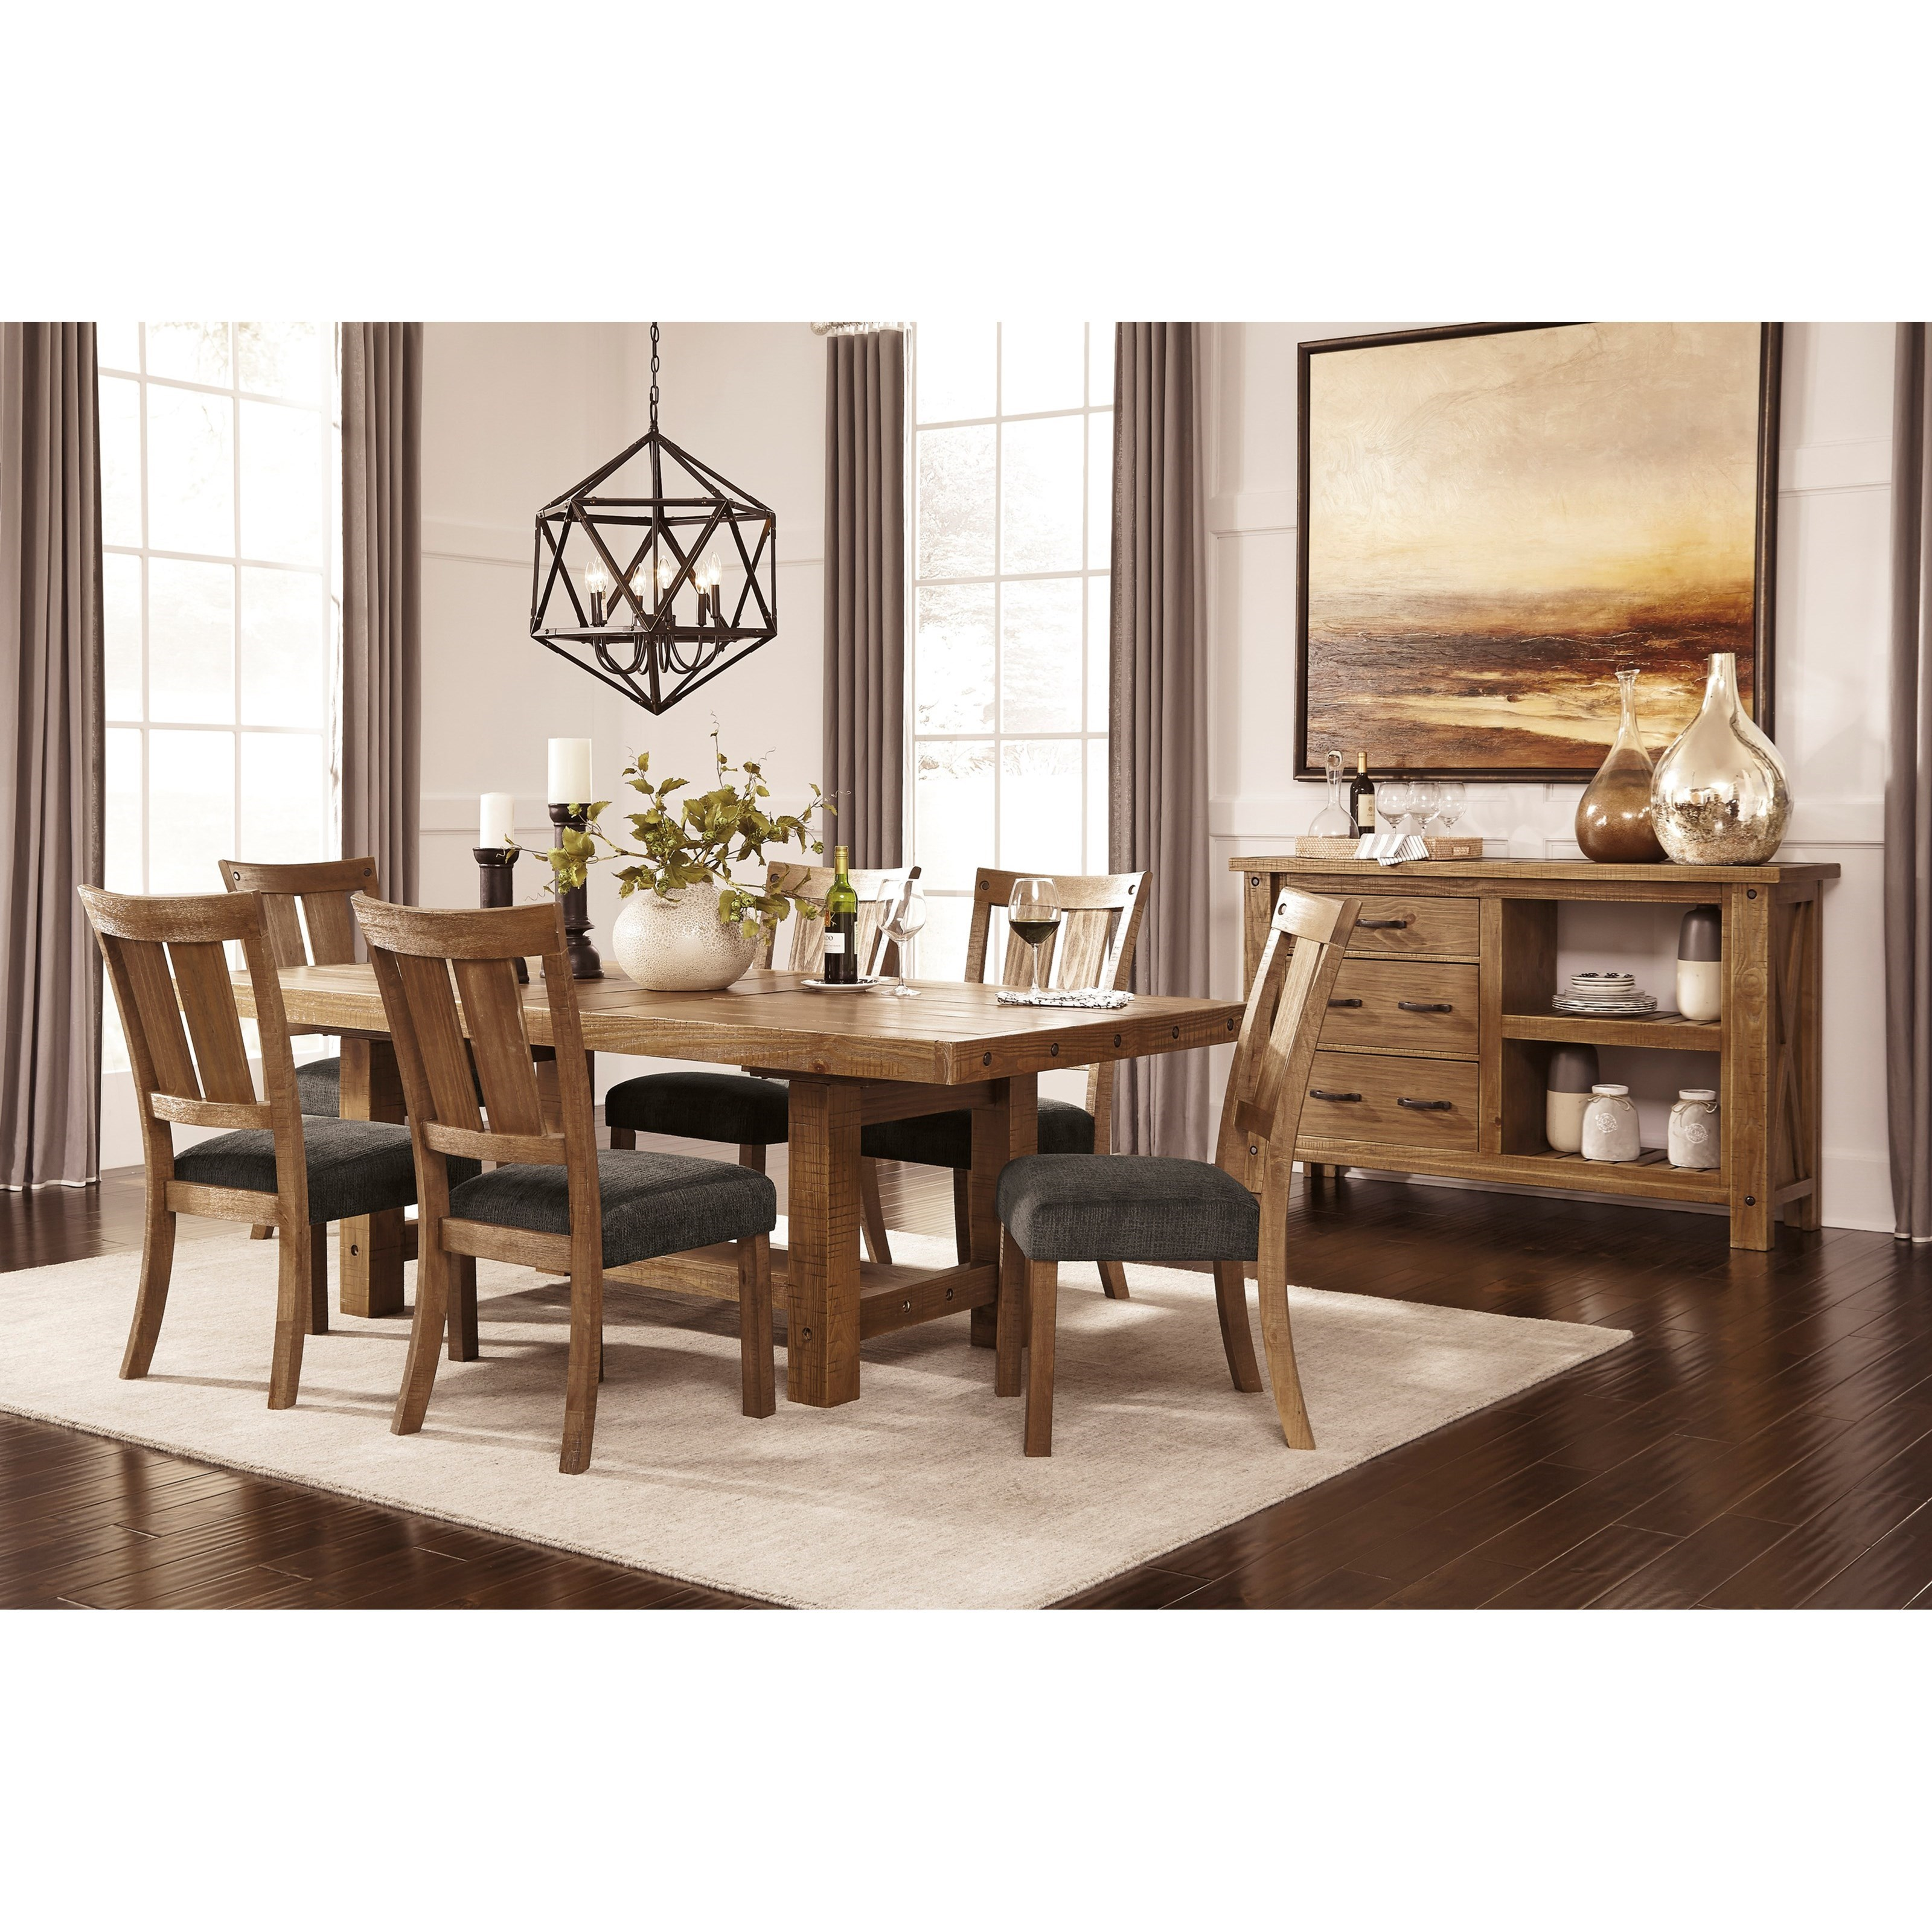 ashley furniture dining room sets signature design tamilo d714 45 rectangle dining 22915